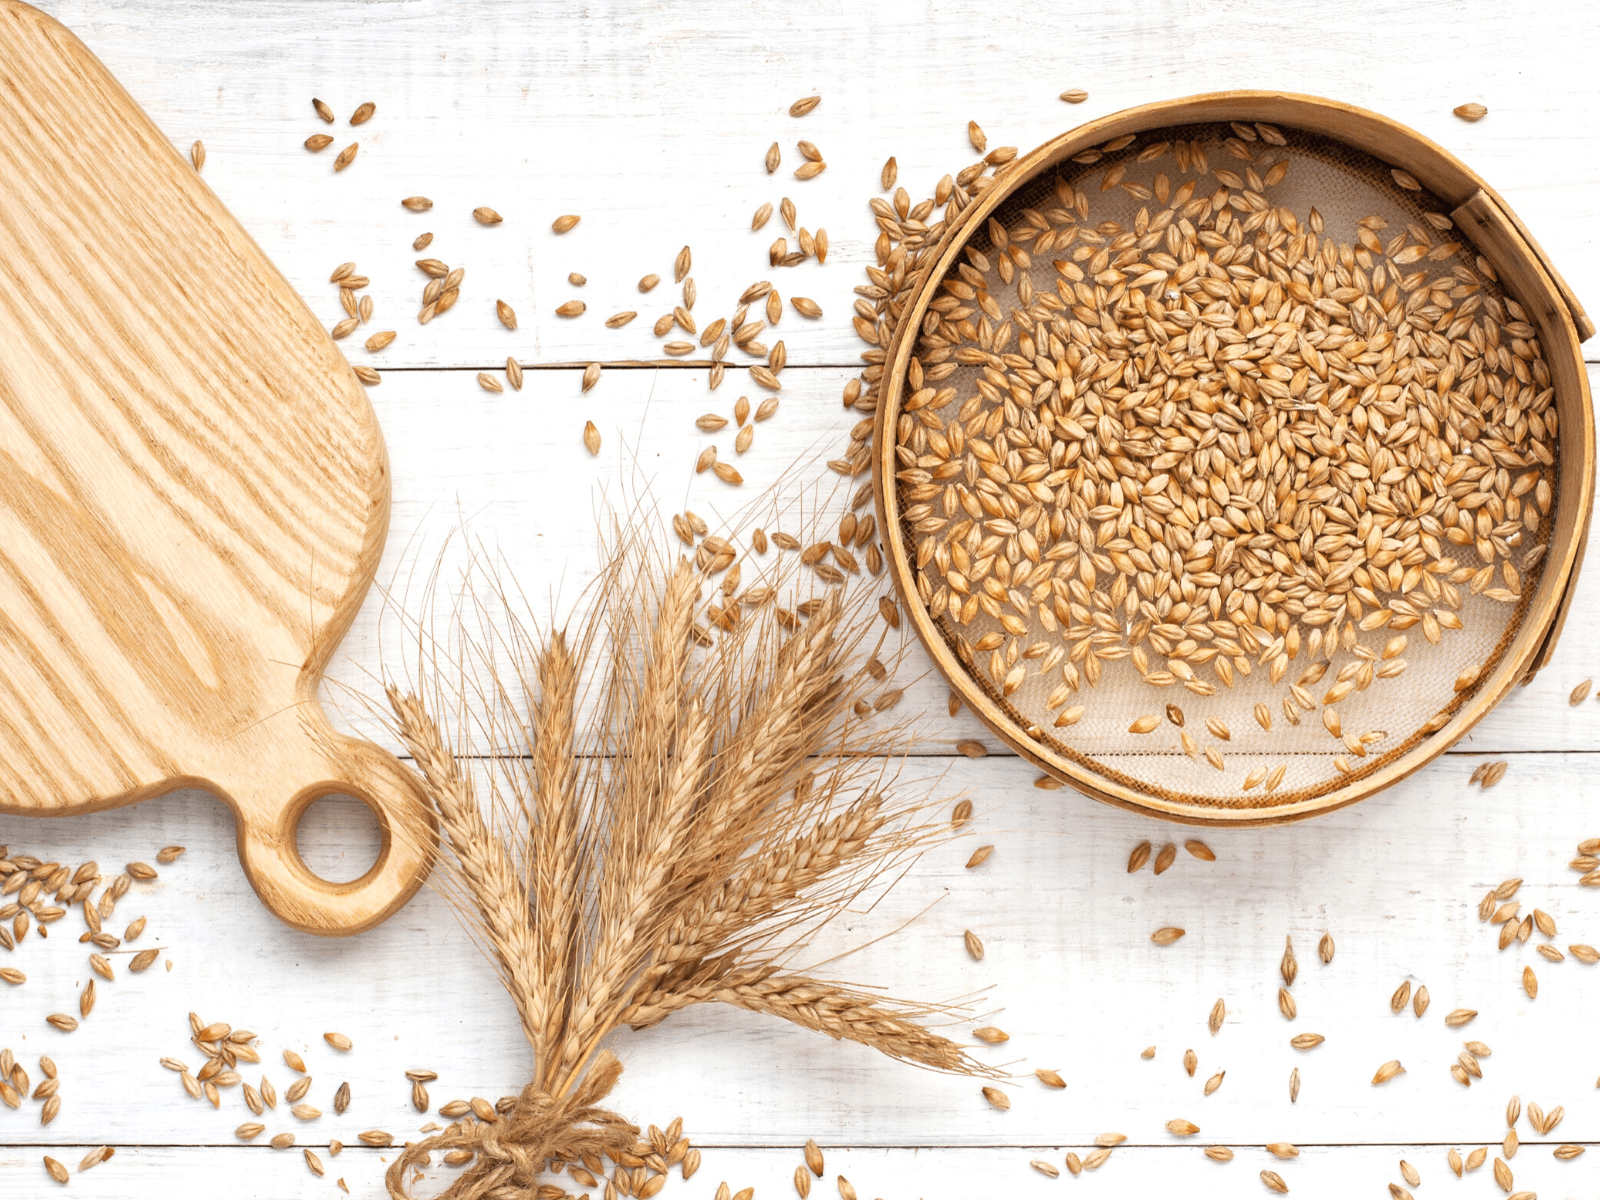 Overhead shot of grains that can be soaked.